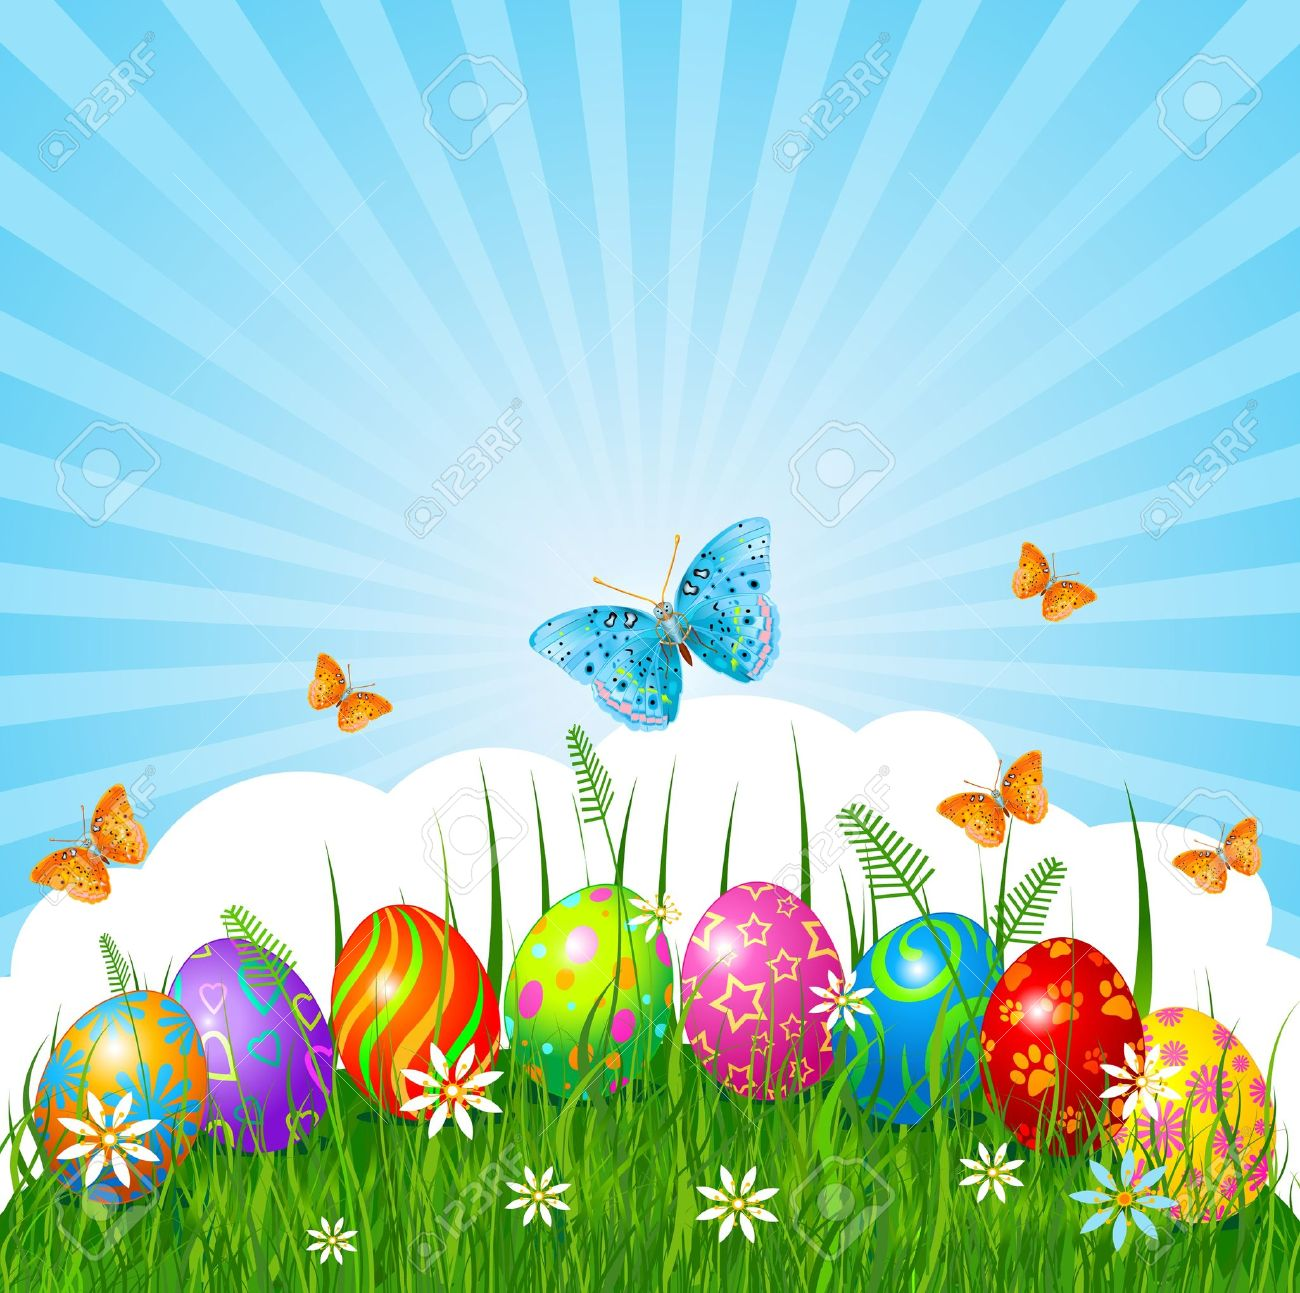 Radial Easter Place Card With Eggs In Grass Stock Vector